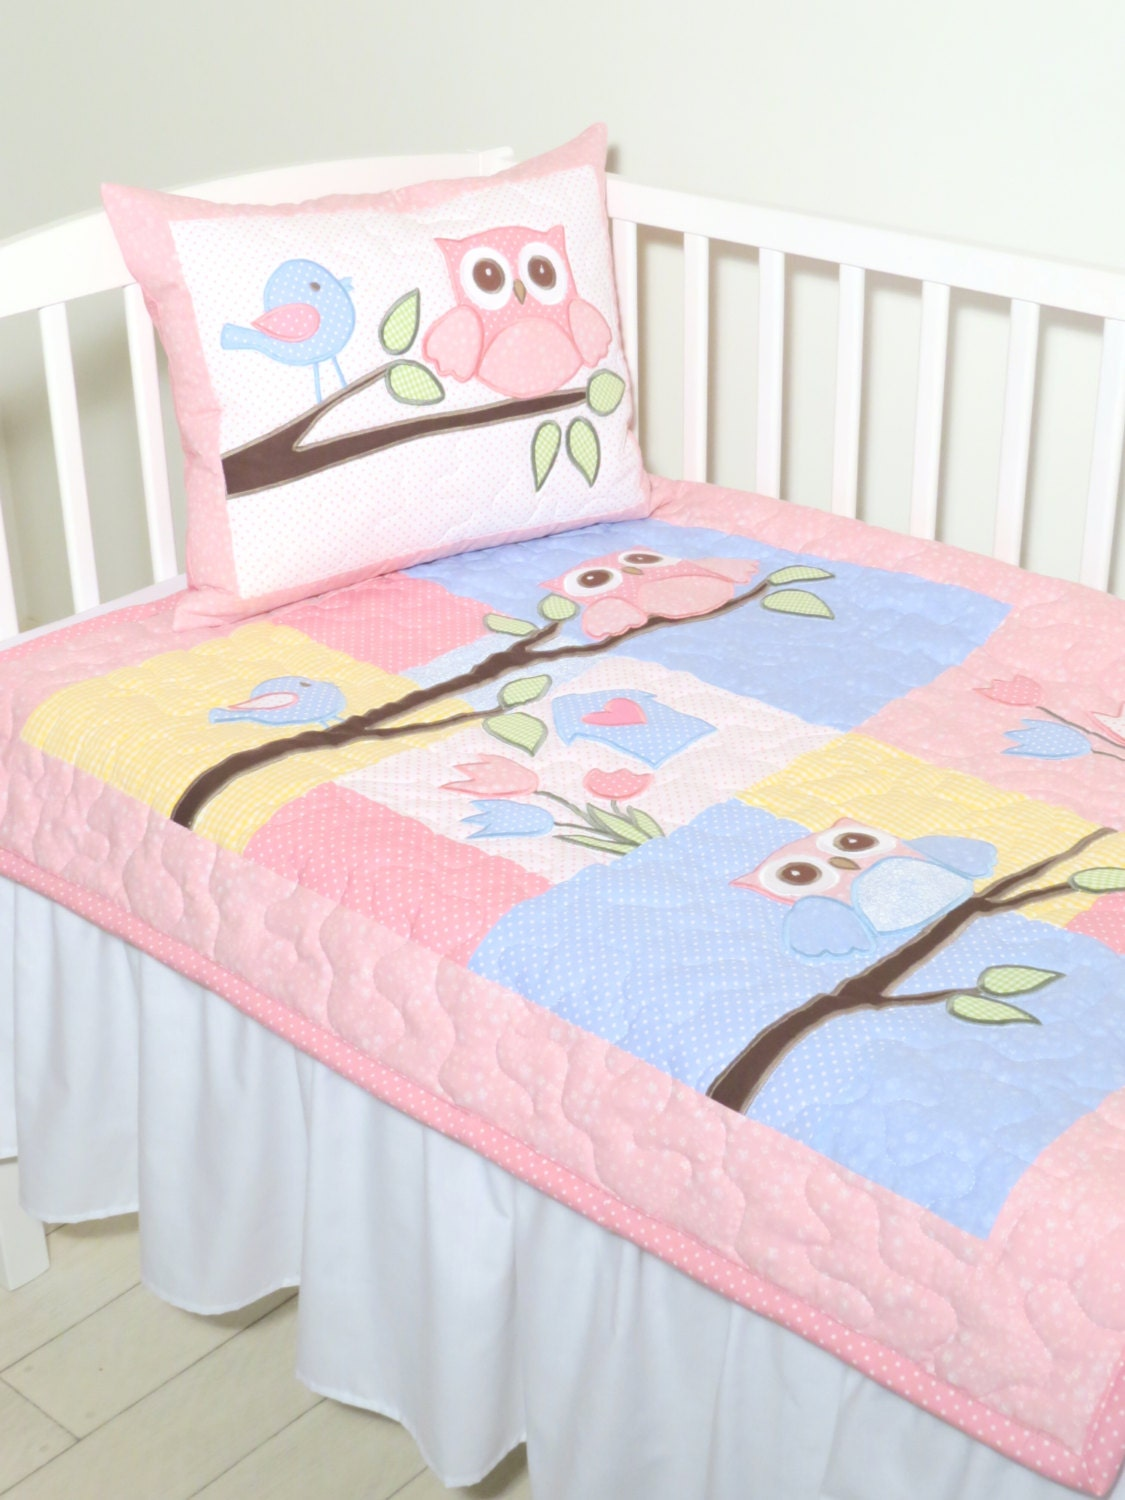 Baby Owl Bedroom Set: Baby Blanket Owl Quilt Blanket Baby Bedding Owl Nursery